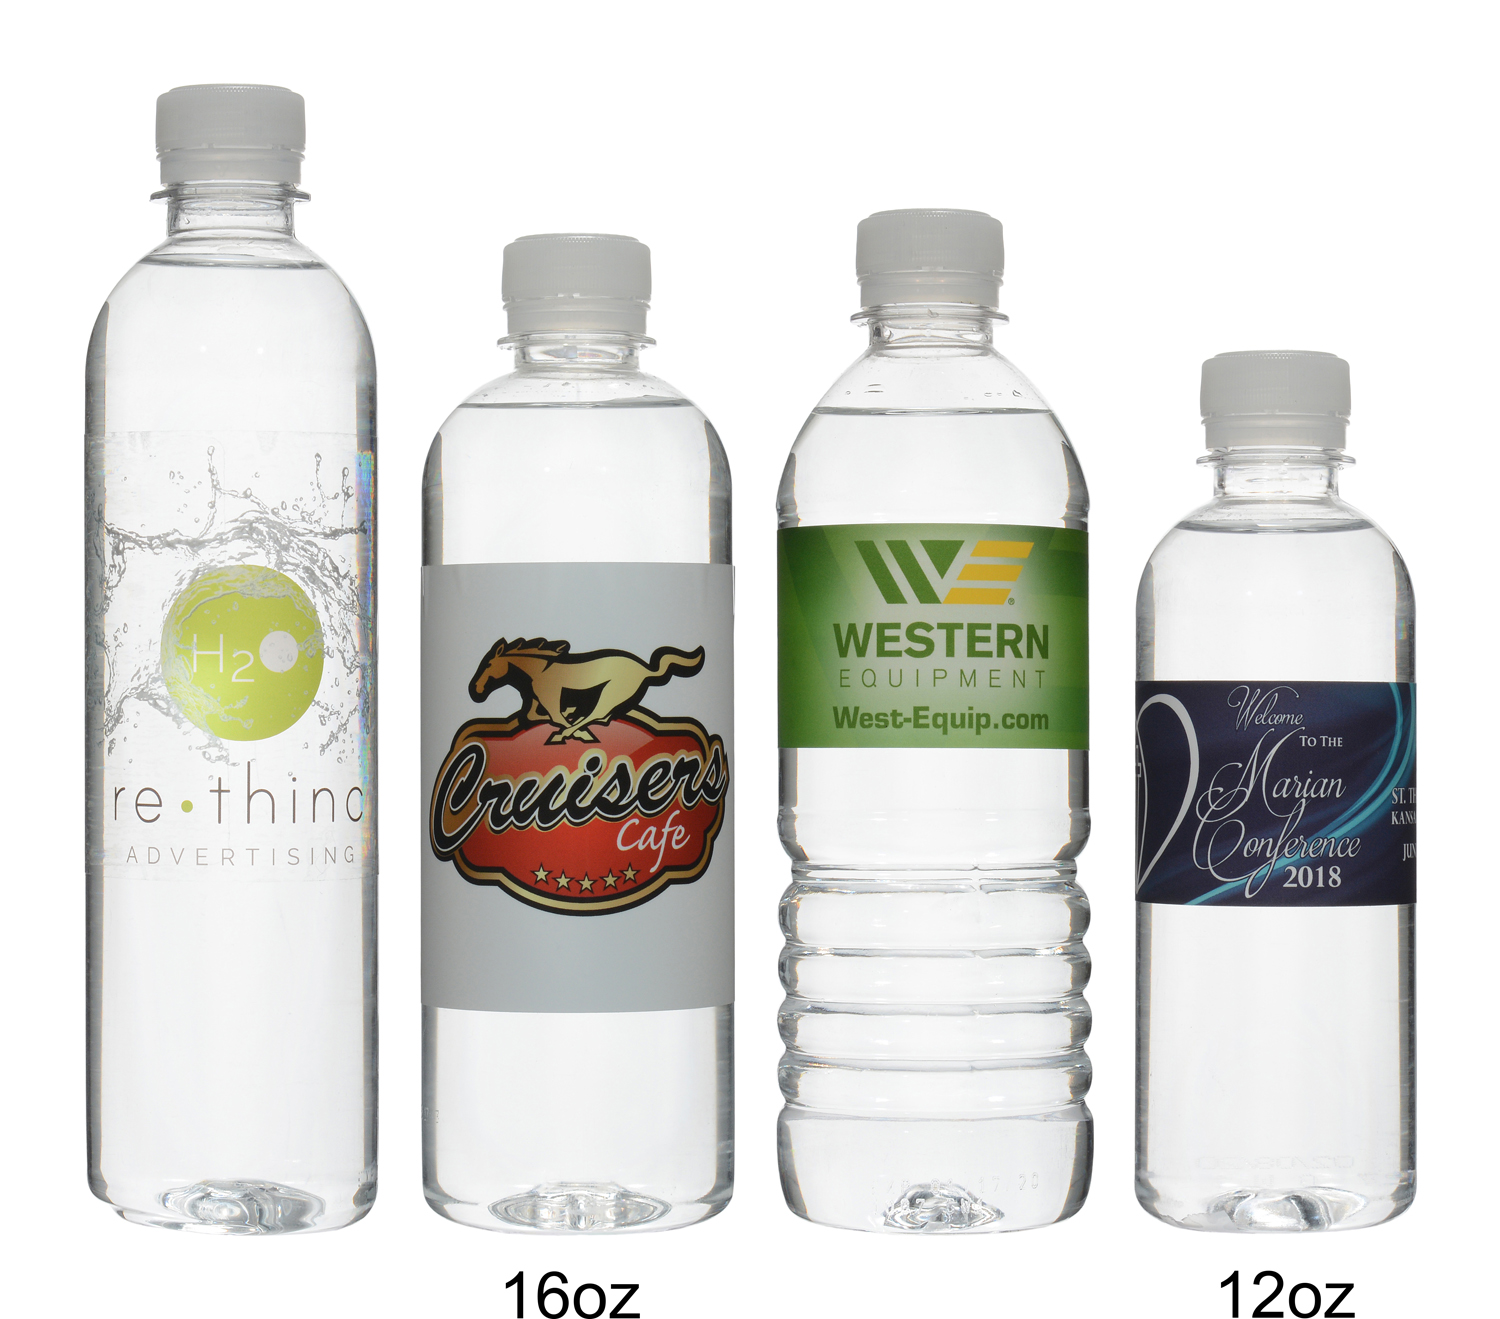 Custom water bottles produced and shipped from California.